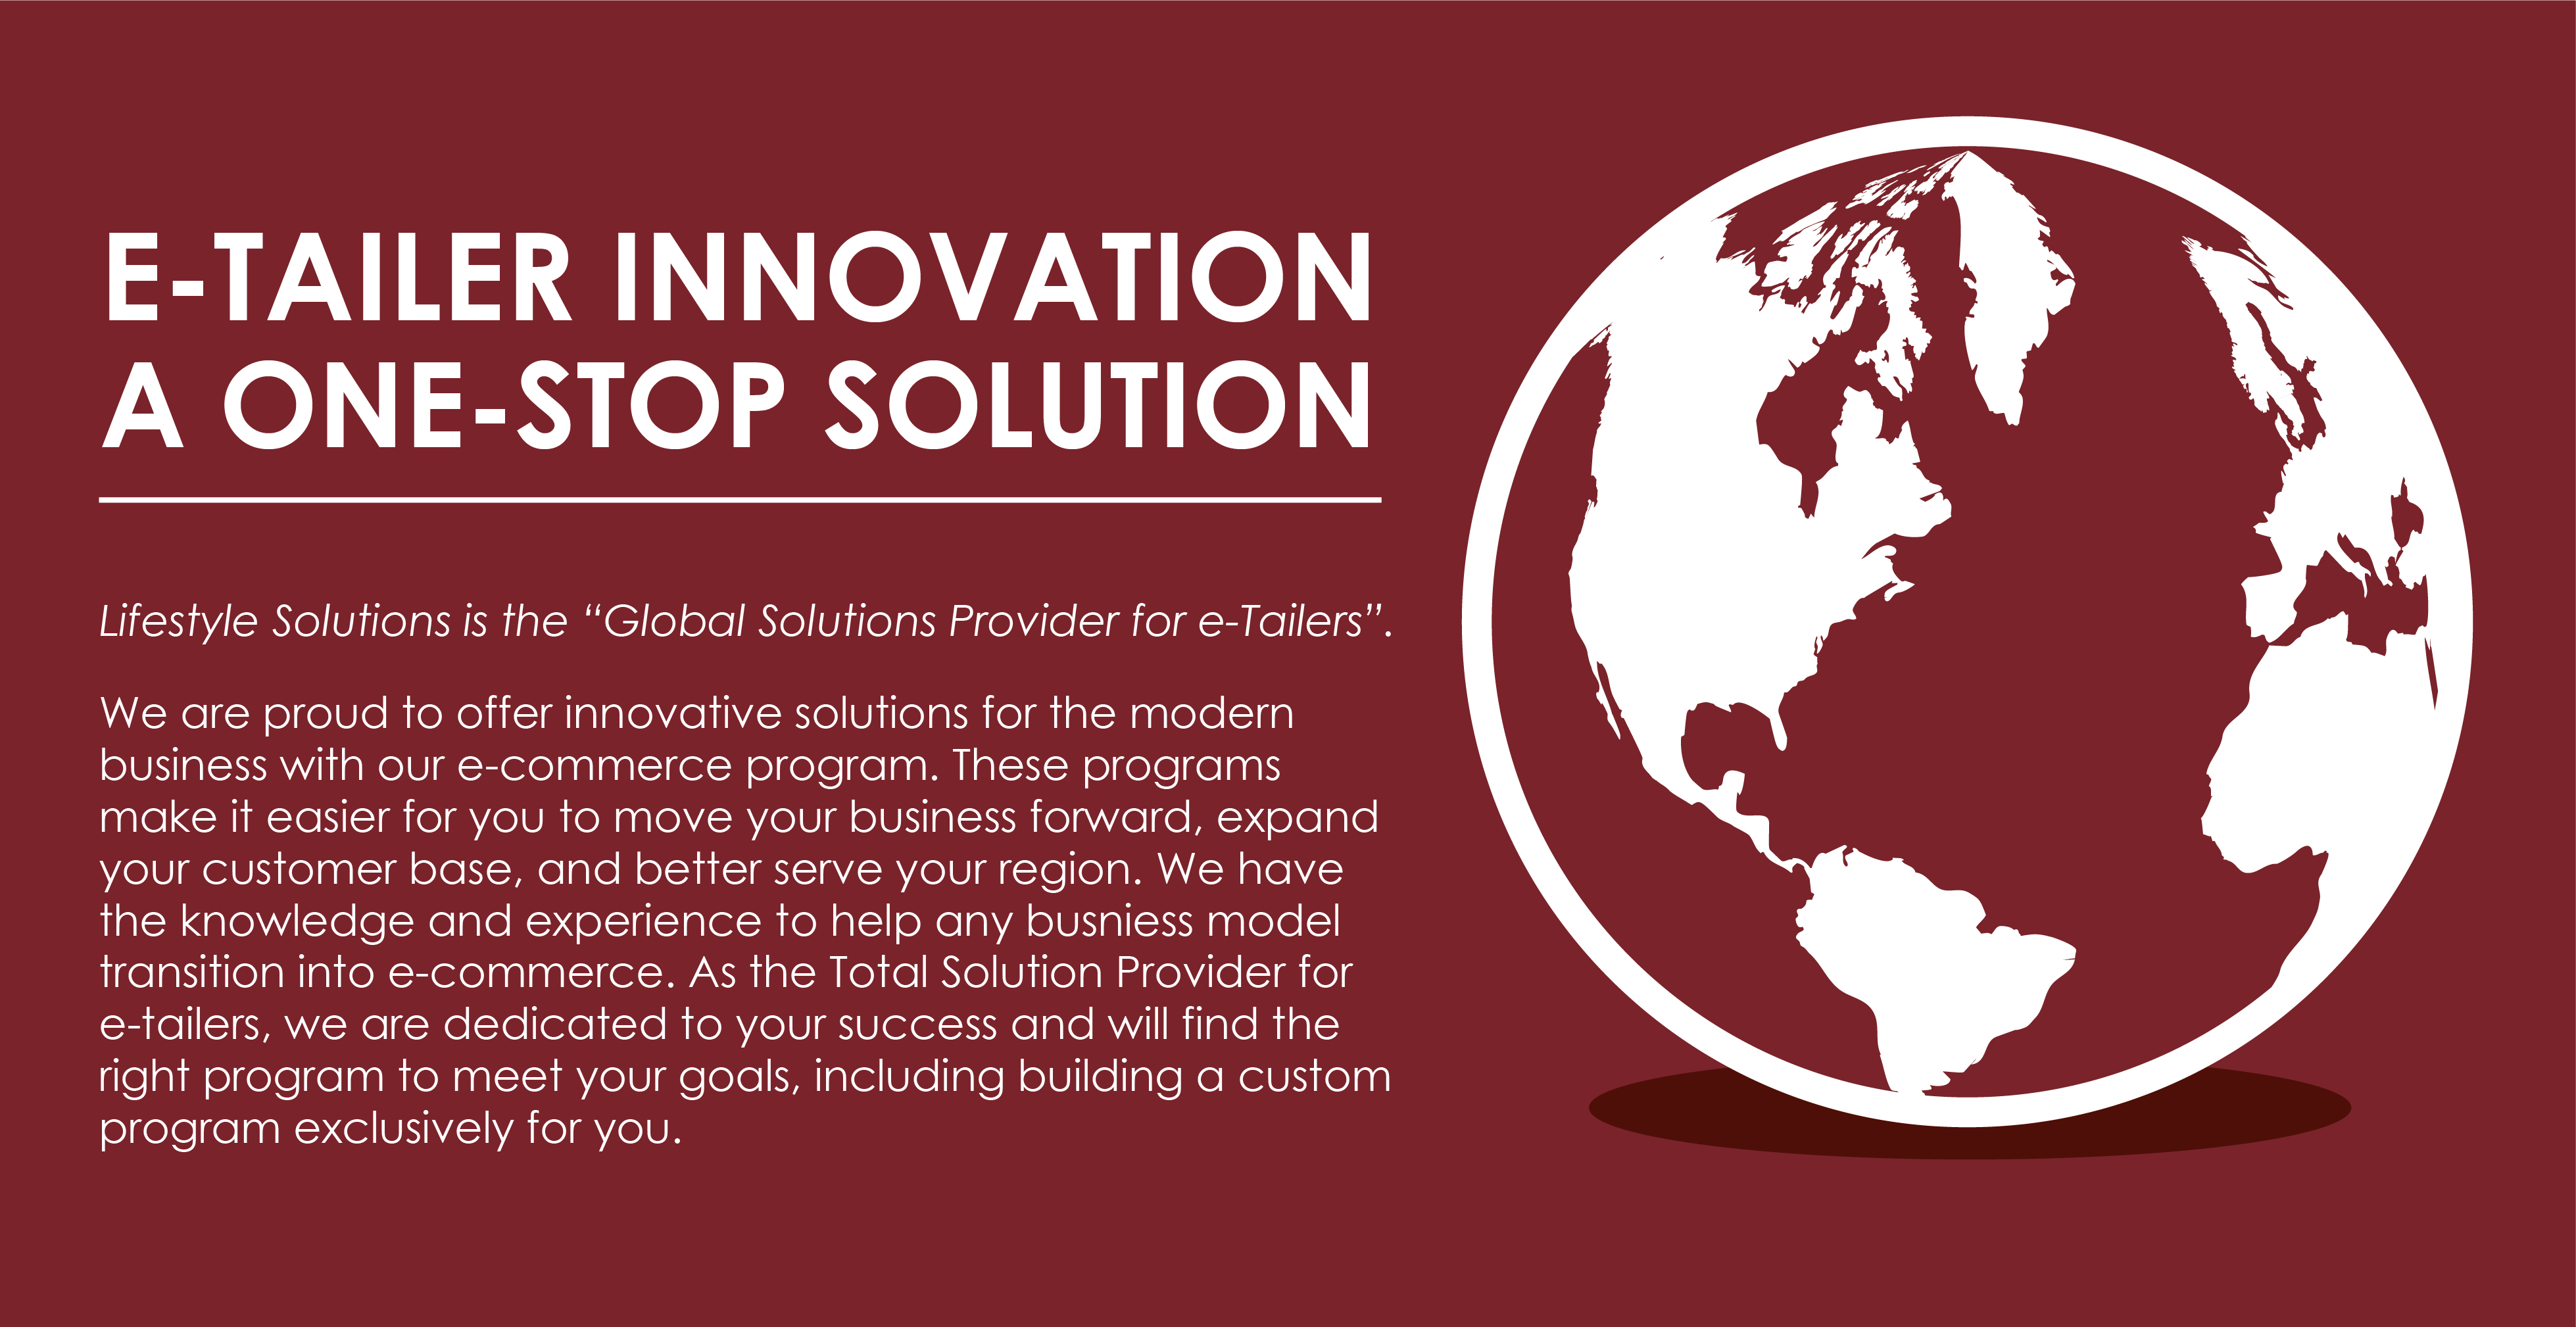 E-Tailer Innovations. A One-Stop Solutions